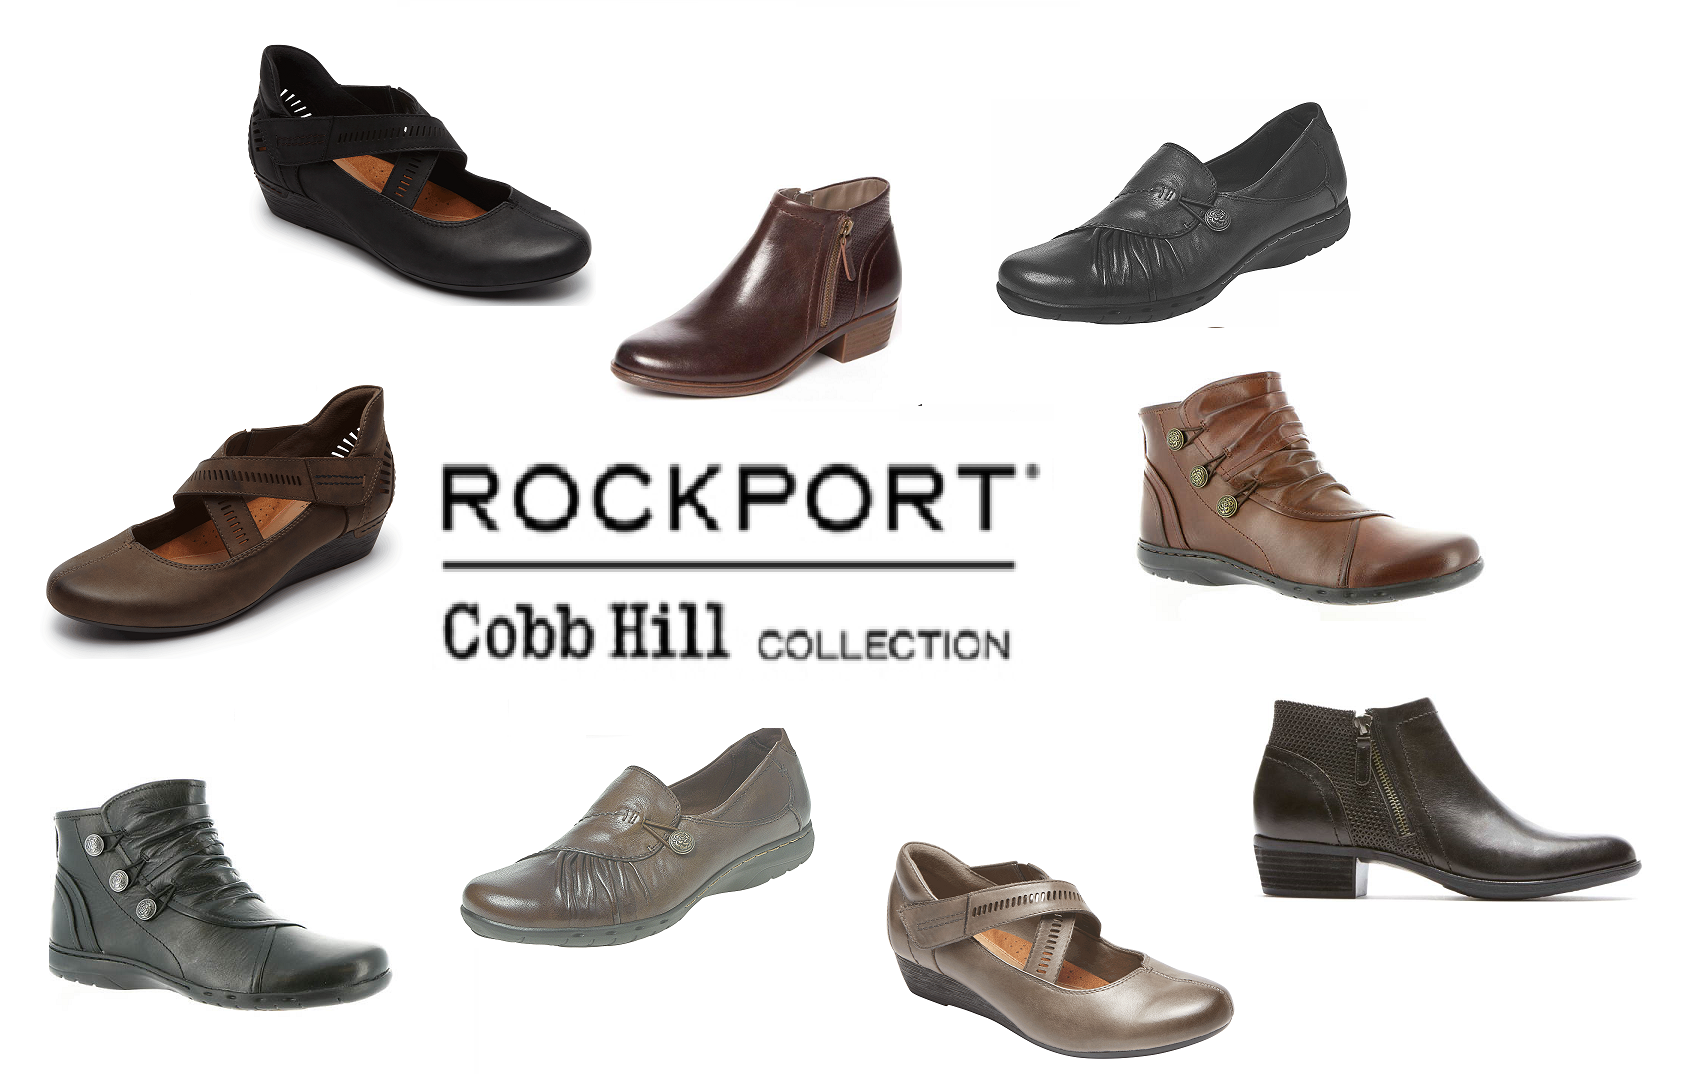 rockport shoes stores locations 90201 county of san bernardino 9